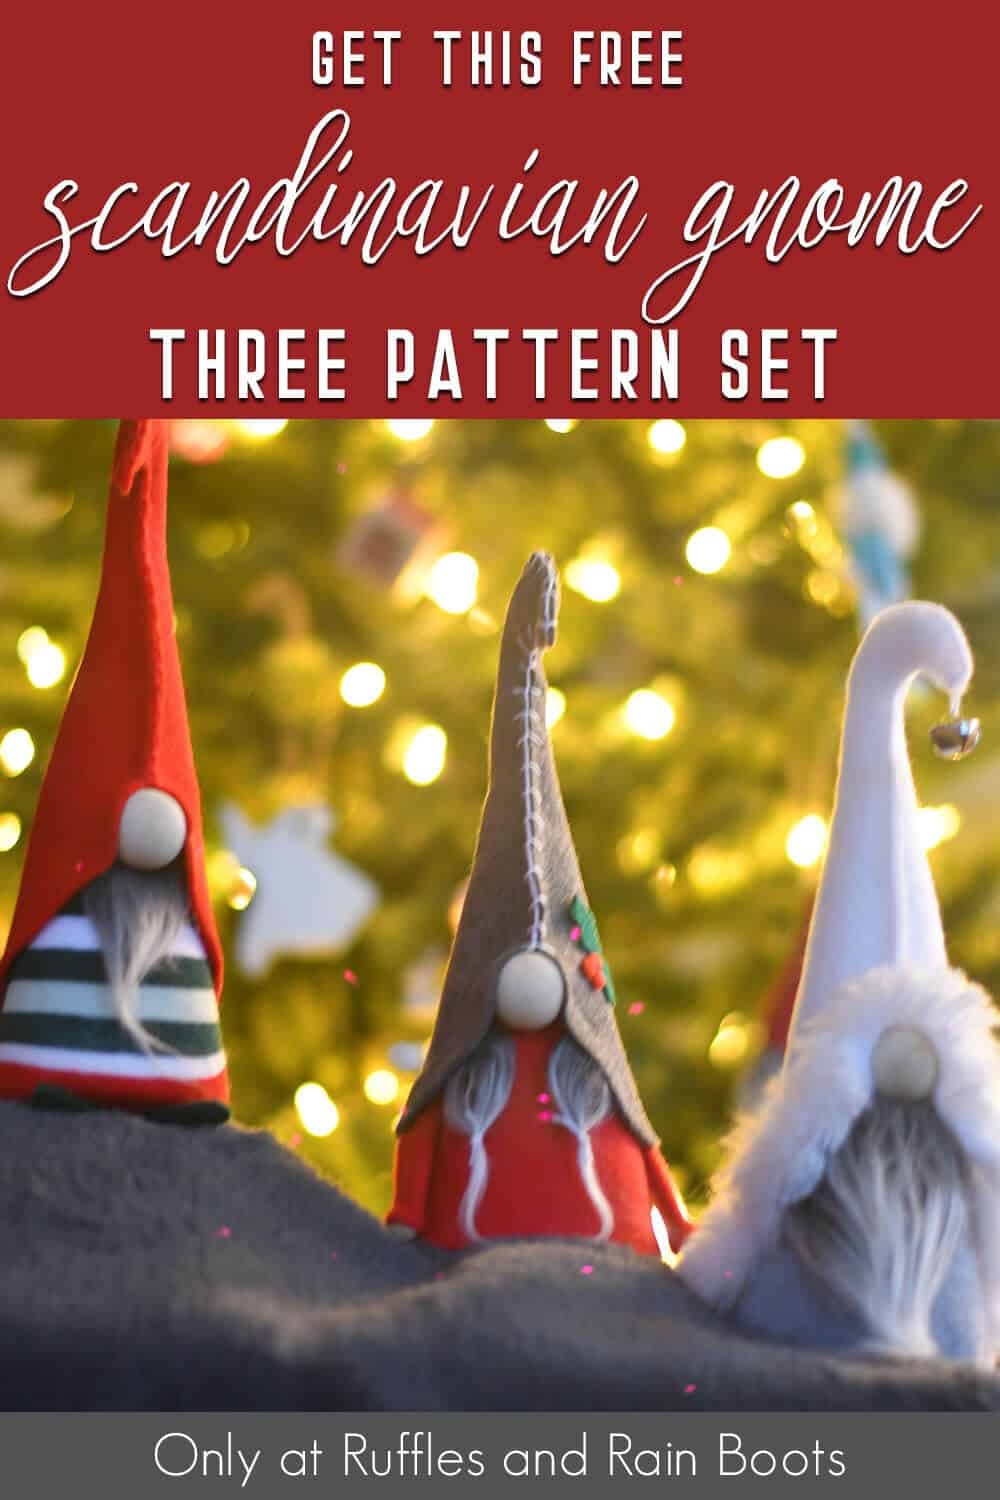 free gnome pattern for scandinavian gnomes with text which reads get this free scandinavian gnome three pattern set